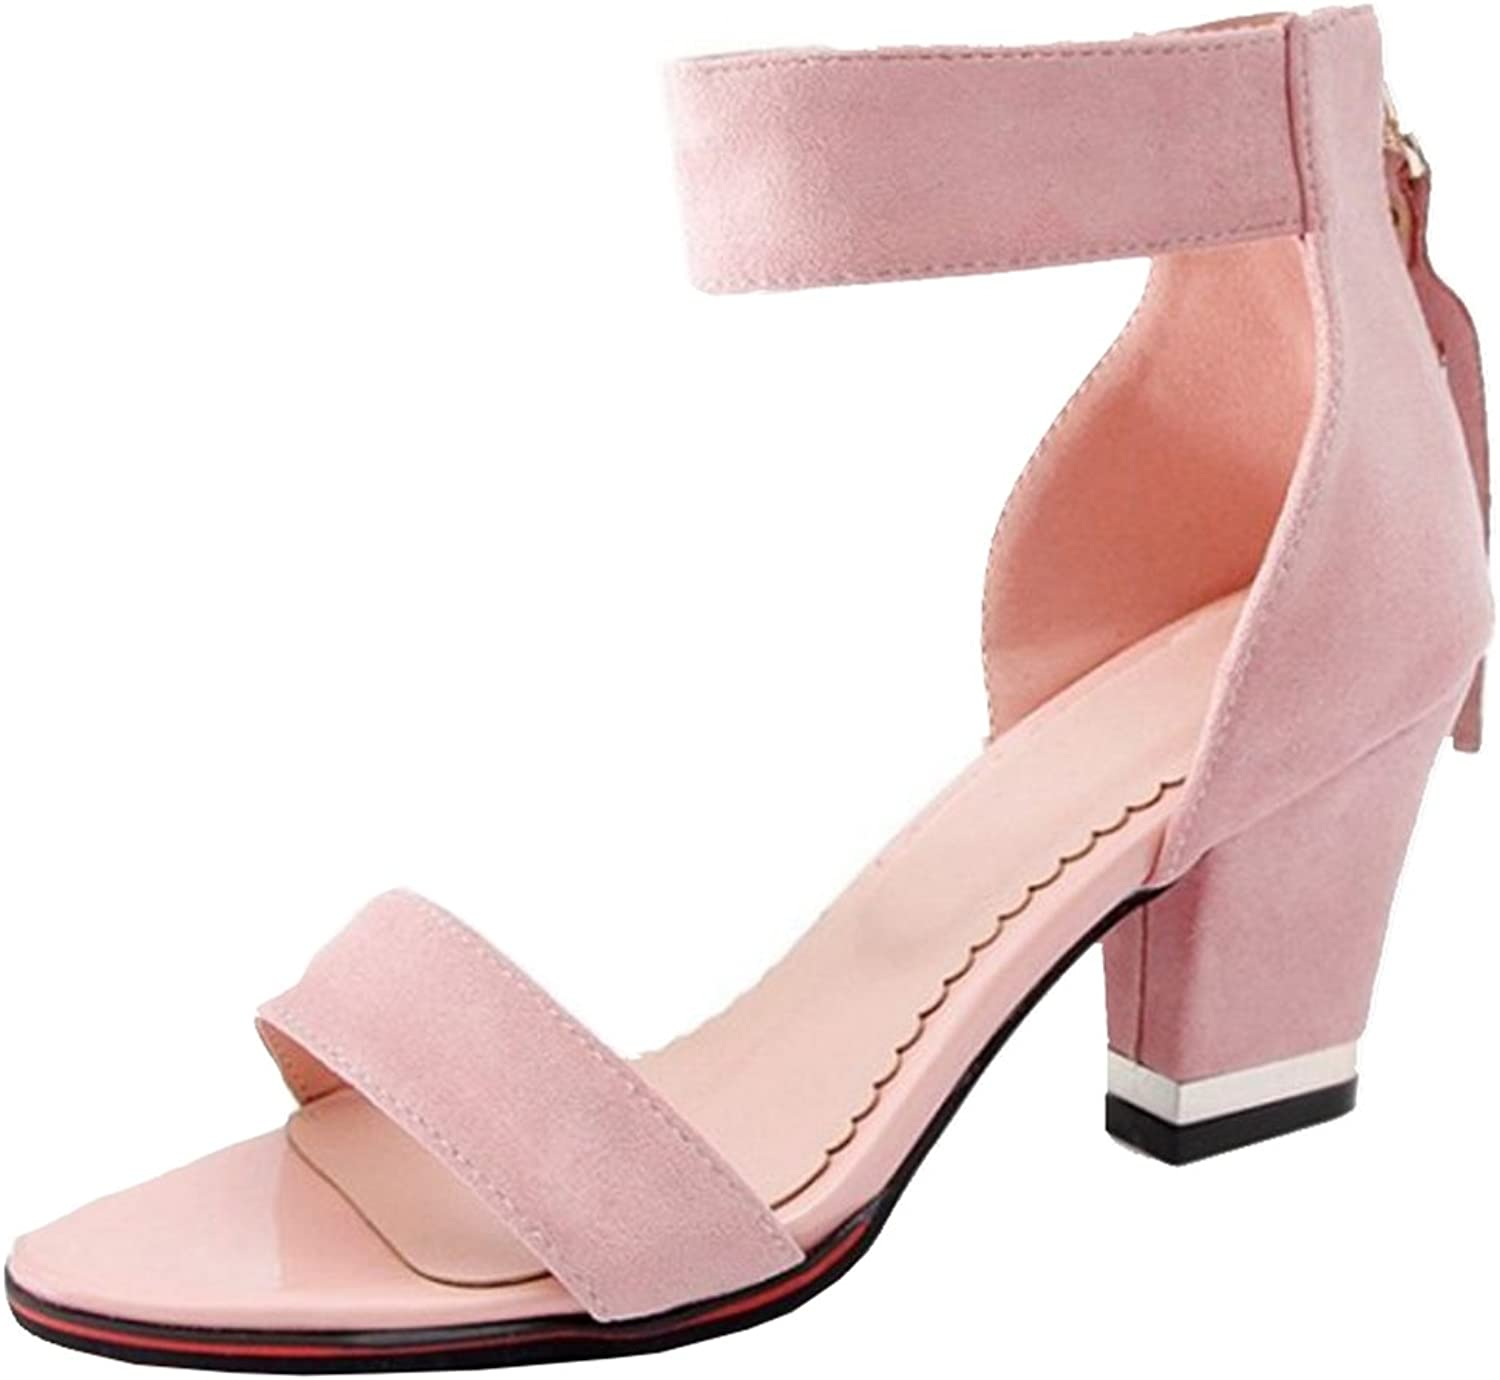 SJJH Fashion Sandals with Mini Large Size Available Cute Sandals with High Chunky Heel for Women